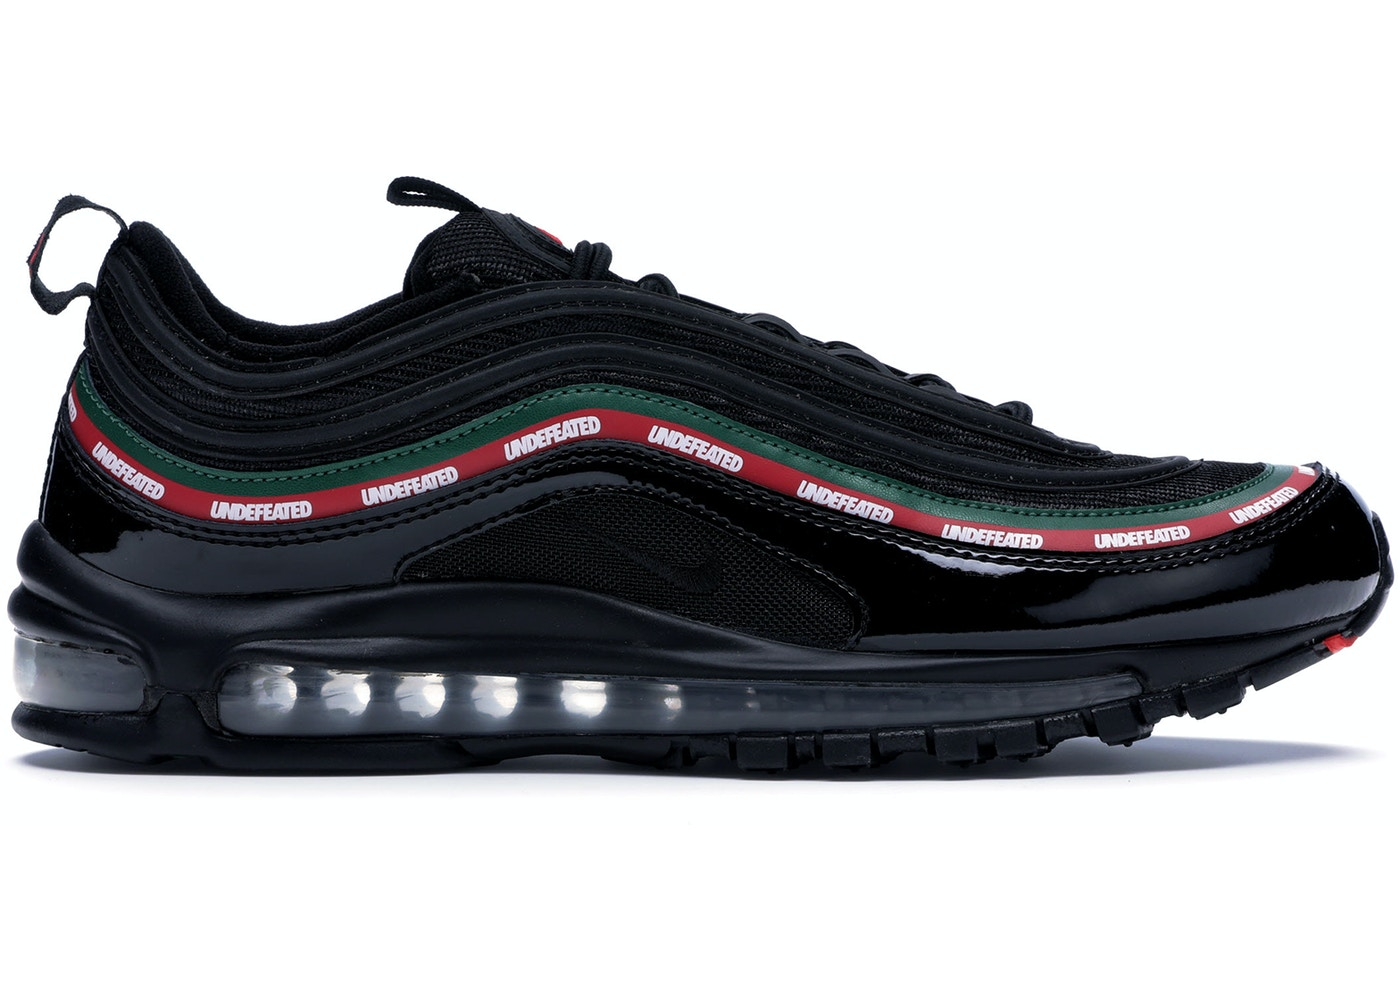 on sale 99898 ddd0b Air Max 97 UNDFTD Black - AJ1986-001